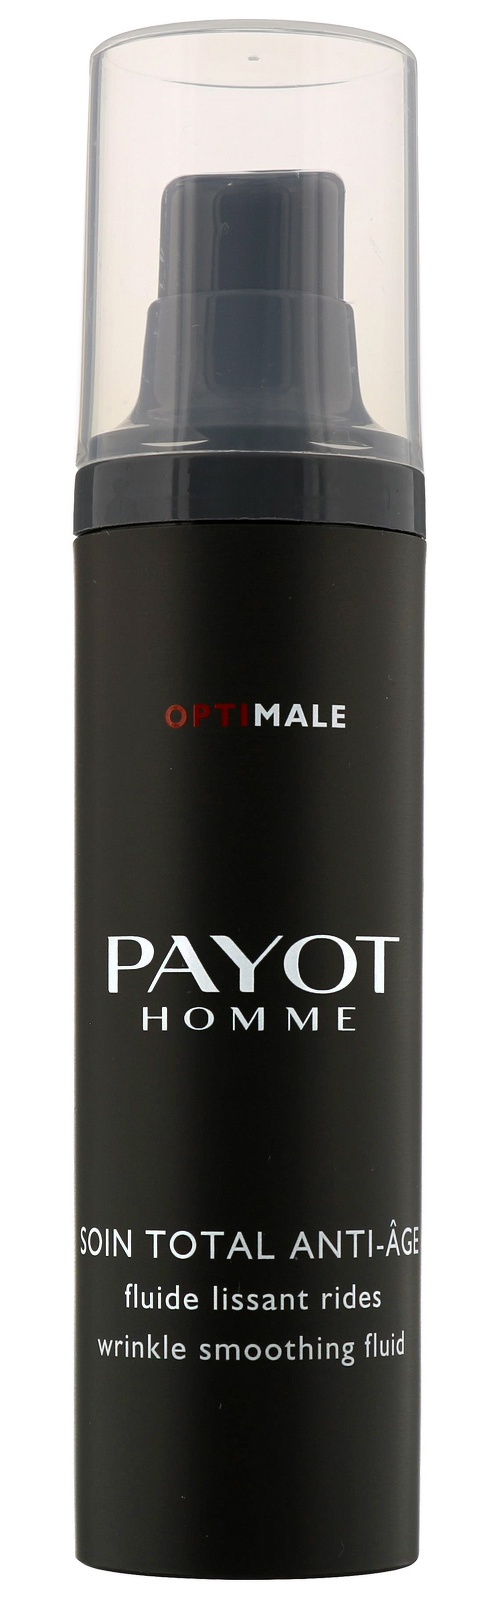 Payot paris Soin Total Anti-âge fluid ingredients (Explained)